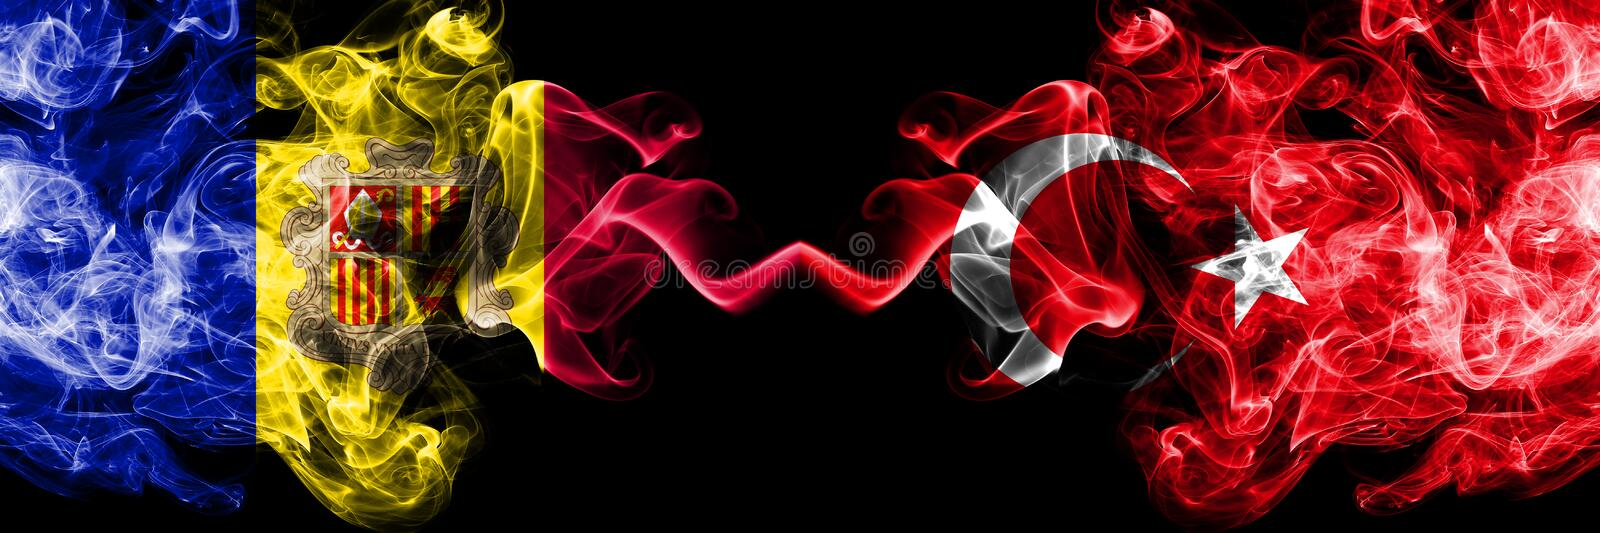 Andorra, Andorran, Turkey, Turkish competition thick colorful smoky flags. European football qualifications games.  stock images